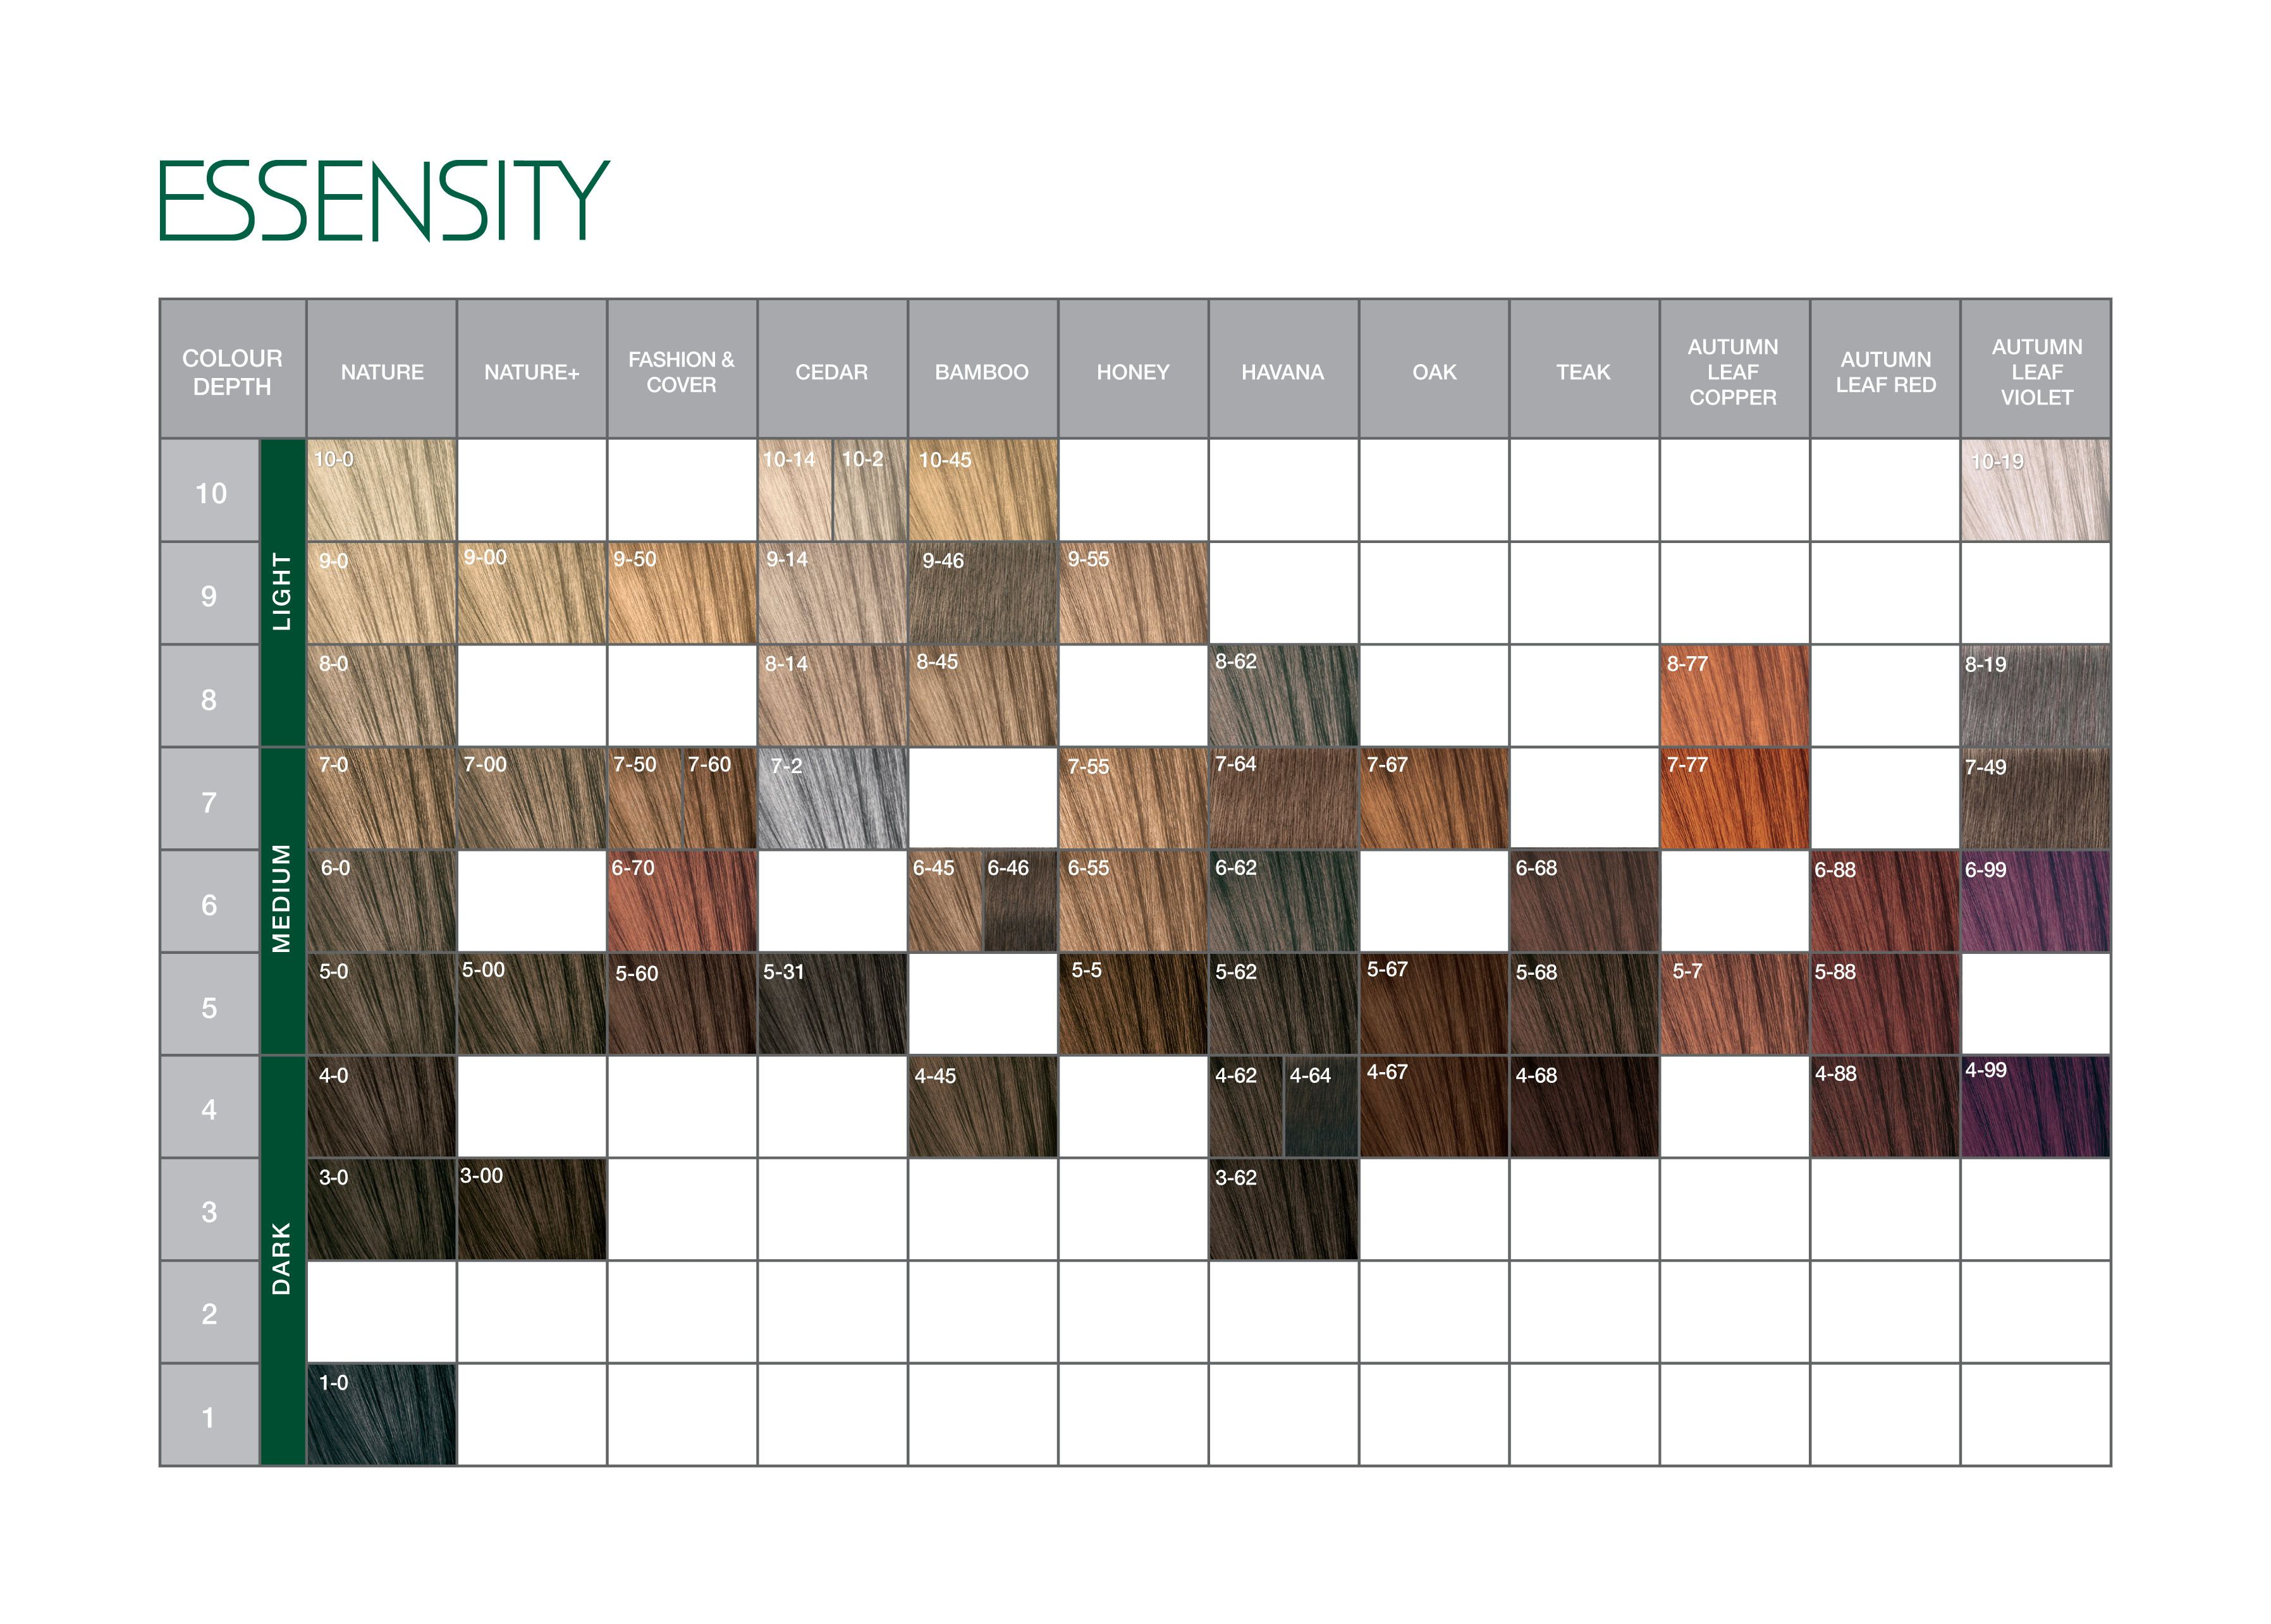 Schwarzkopf professional essensity assortment en june 2016 hair schwarzkopf professional essensity assortment en june 2016 nvjuhfo Image collections